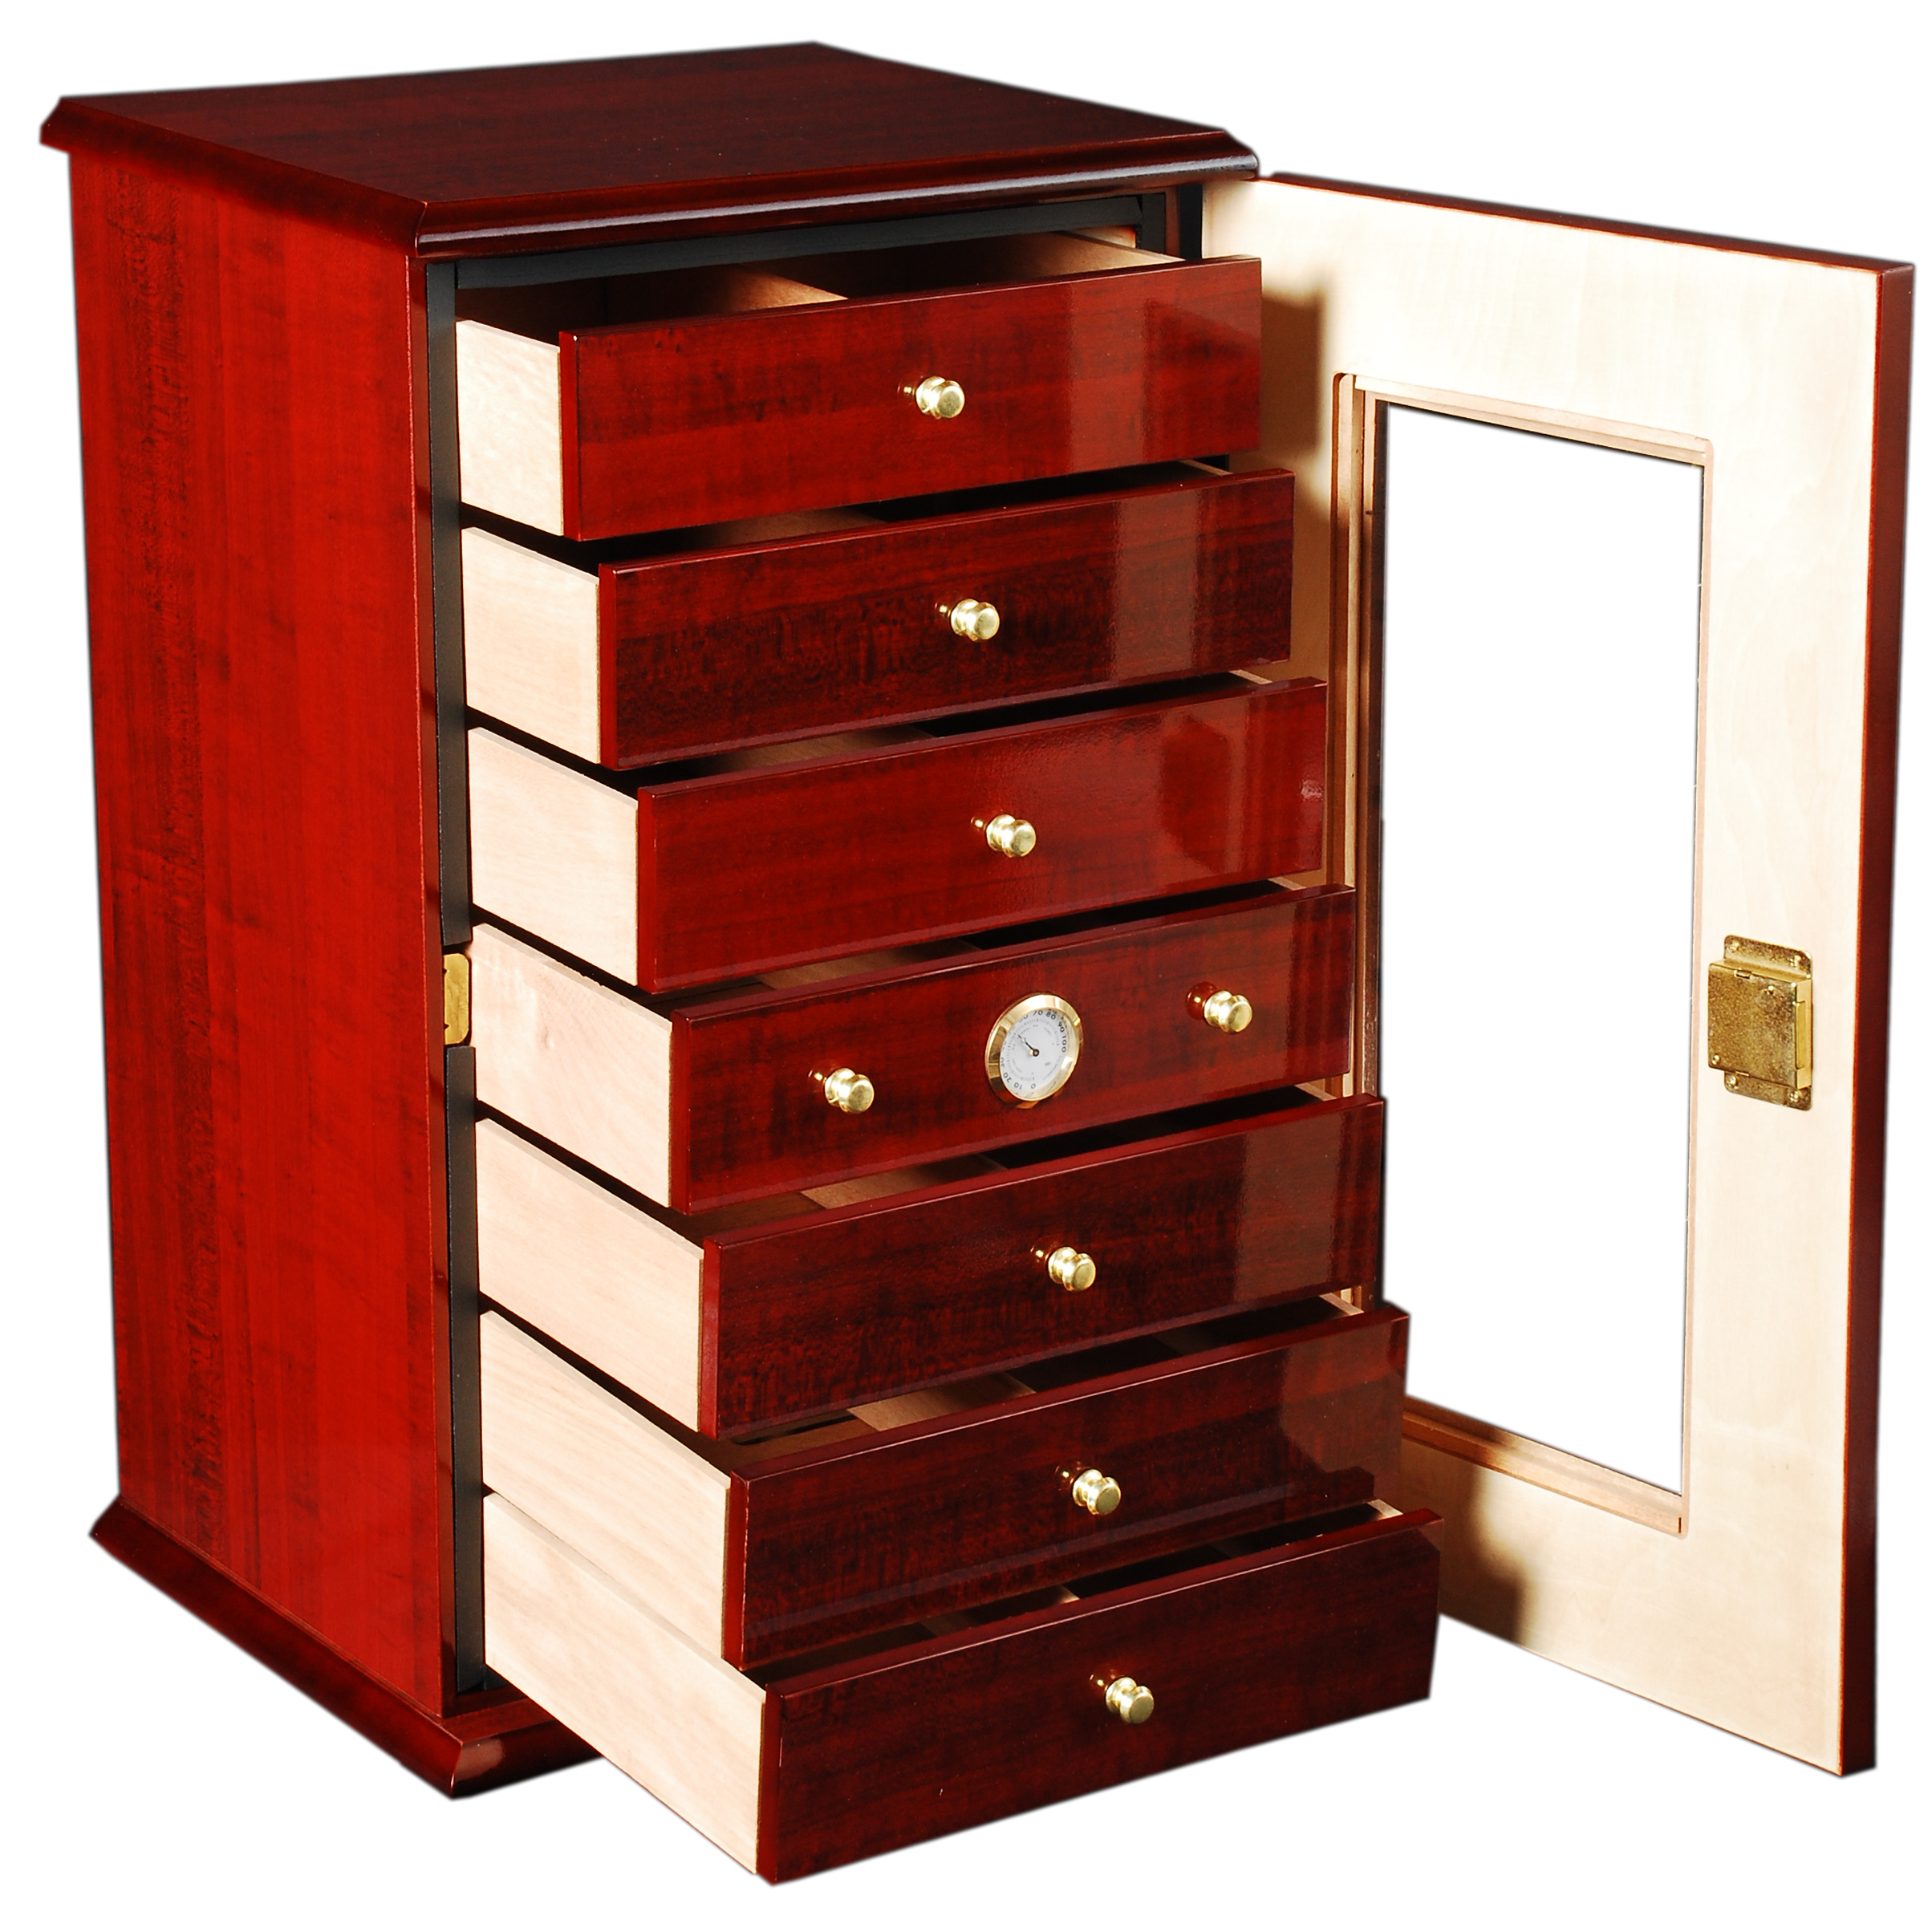 150 Cigar Charleston Vertical Humidor with Drawers #B61204